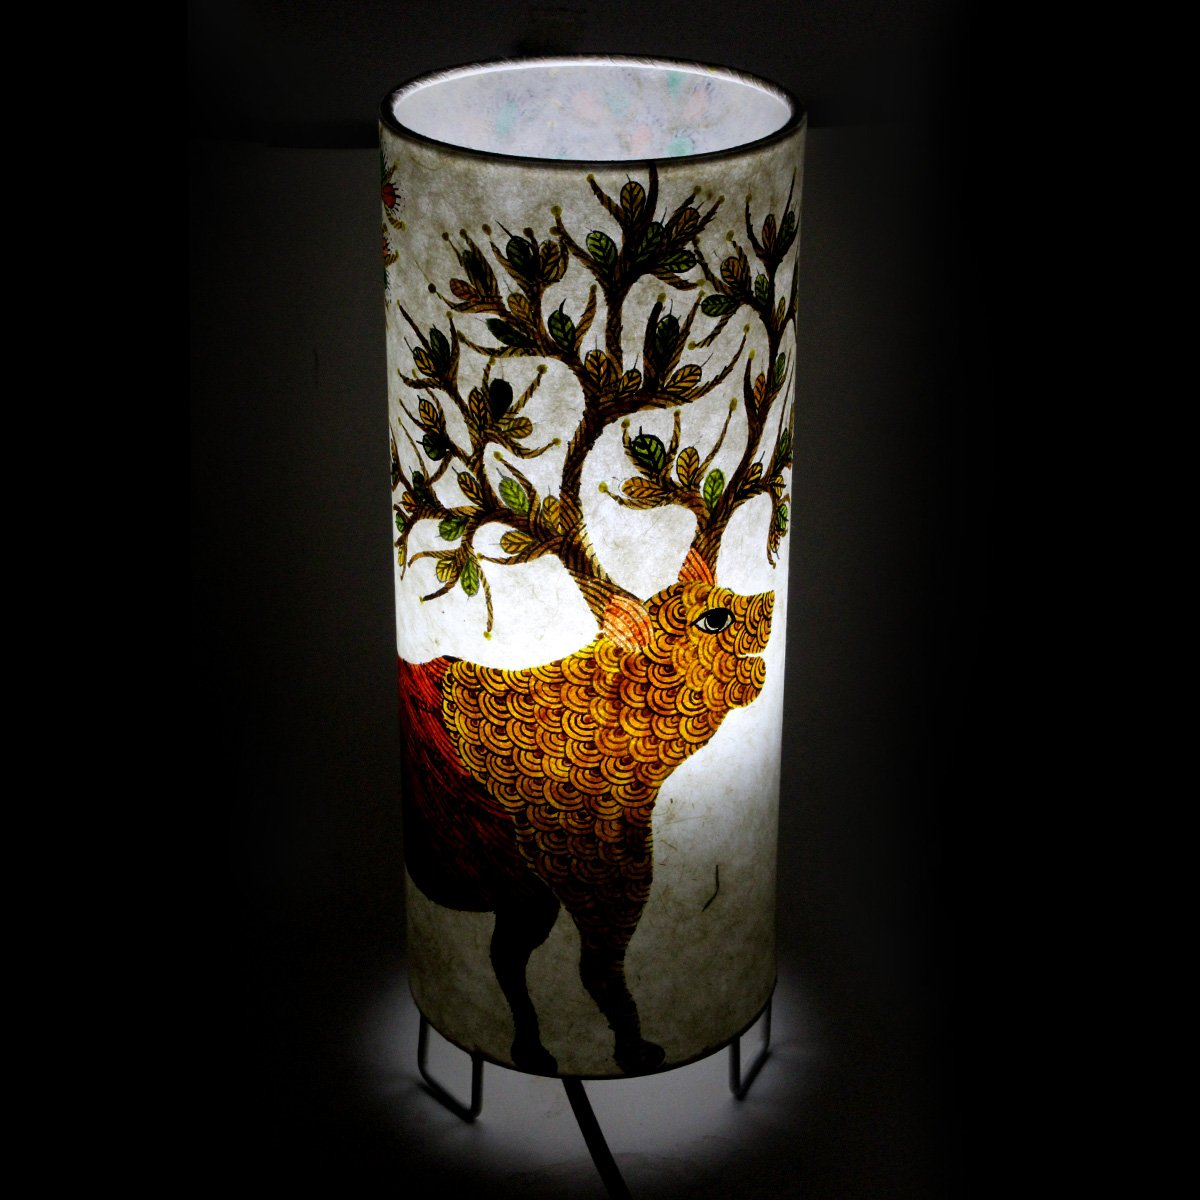 New Indian Classy Gond Art Hand Painted Electric Decorative Tea Light Night Lamp - Crafted On Handmade Canvas Paper and Steel Base By Awarded Tribal Artisans Of India by India Meets India